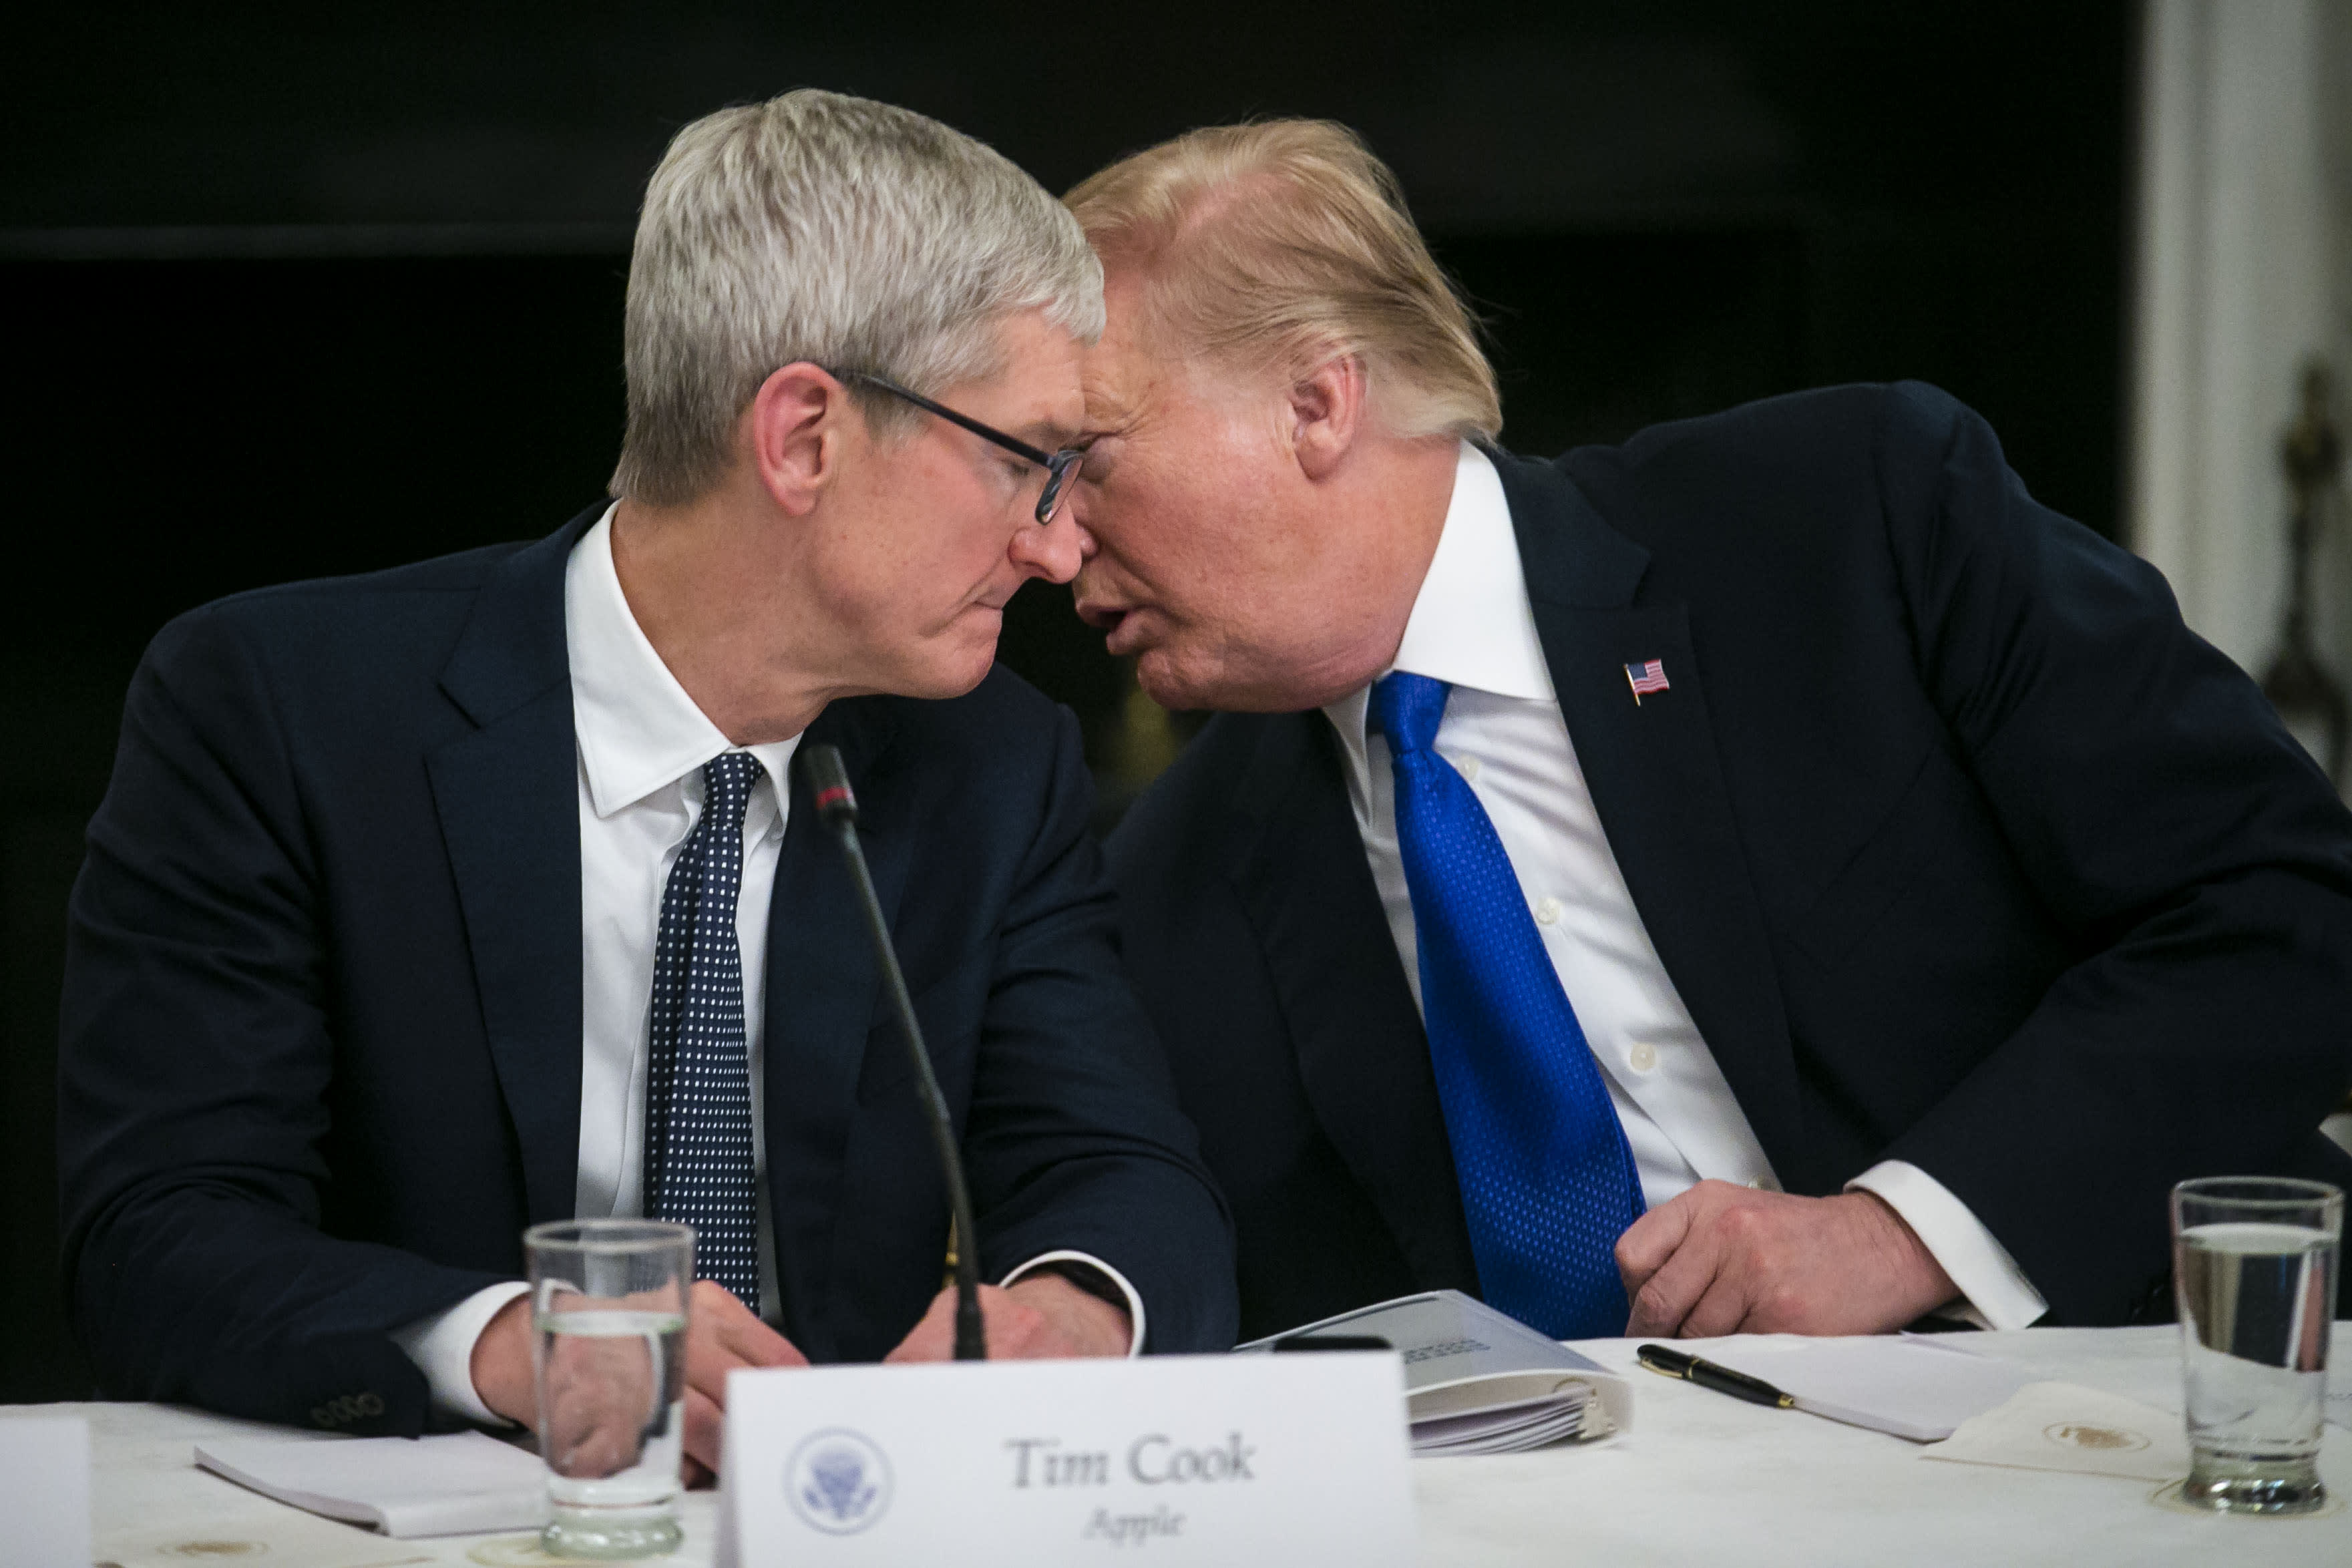 Trump says he talked to Apple CEO Tim Cook about tariffs and Samsung